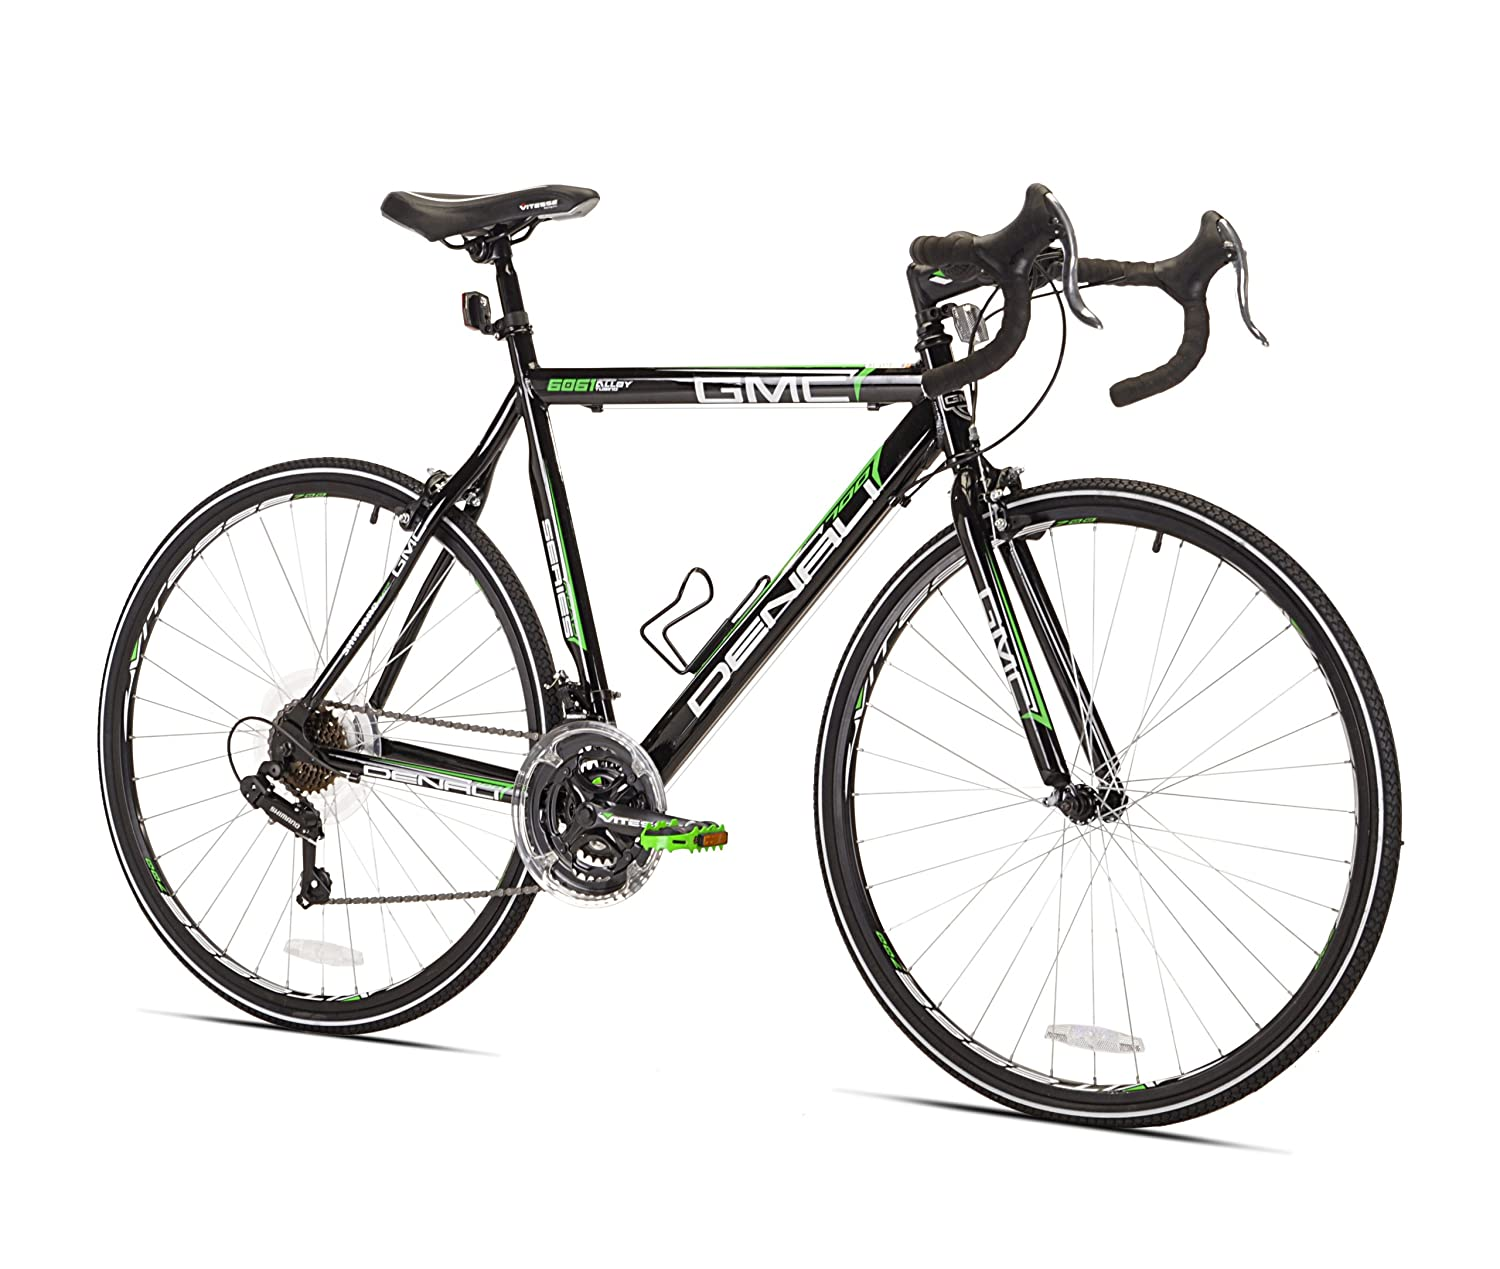 Bike Sales Online Low Prices GMC Denali Road Bike